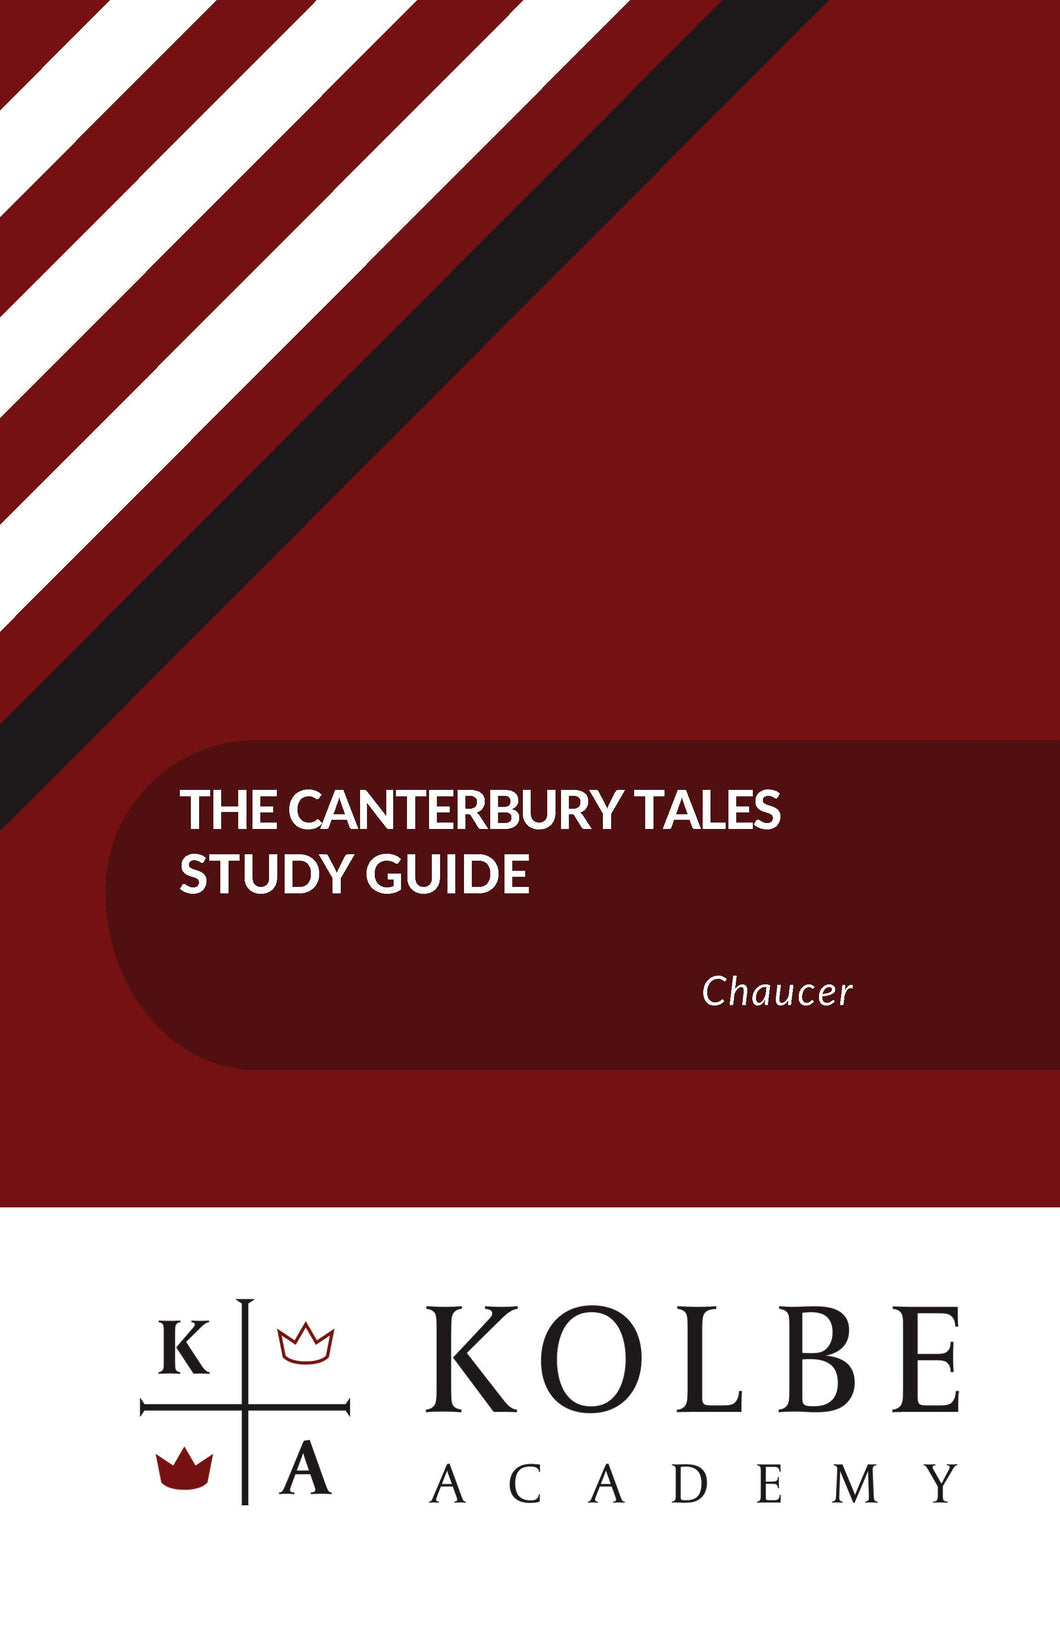 The Canterbury Tales Study Guides